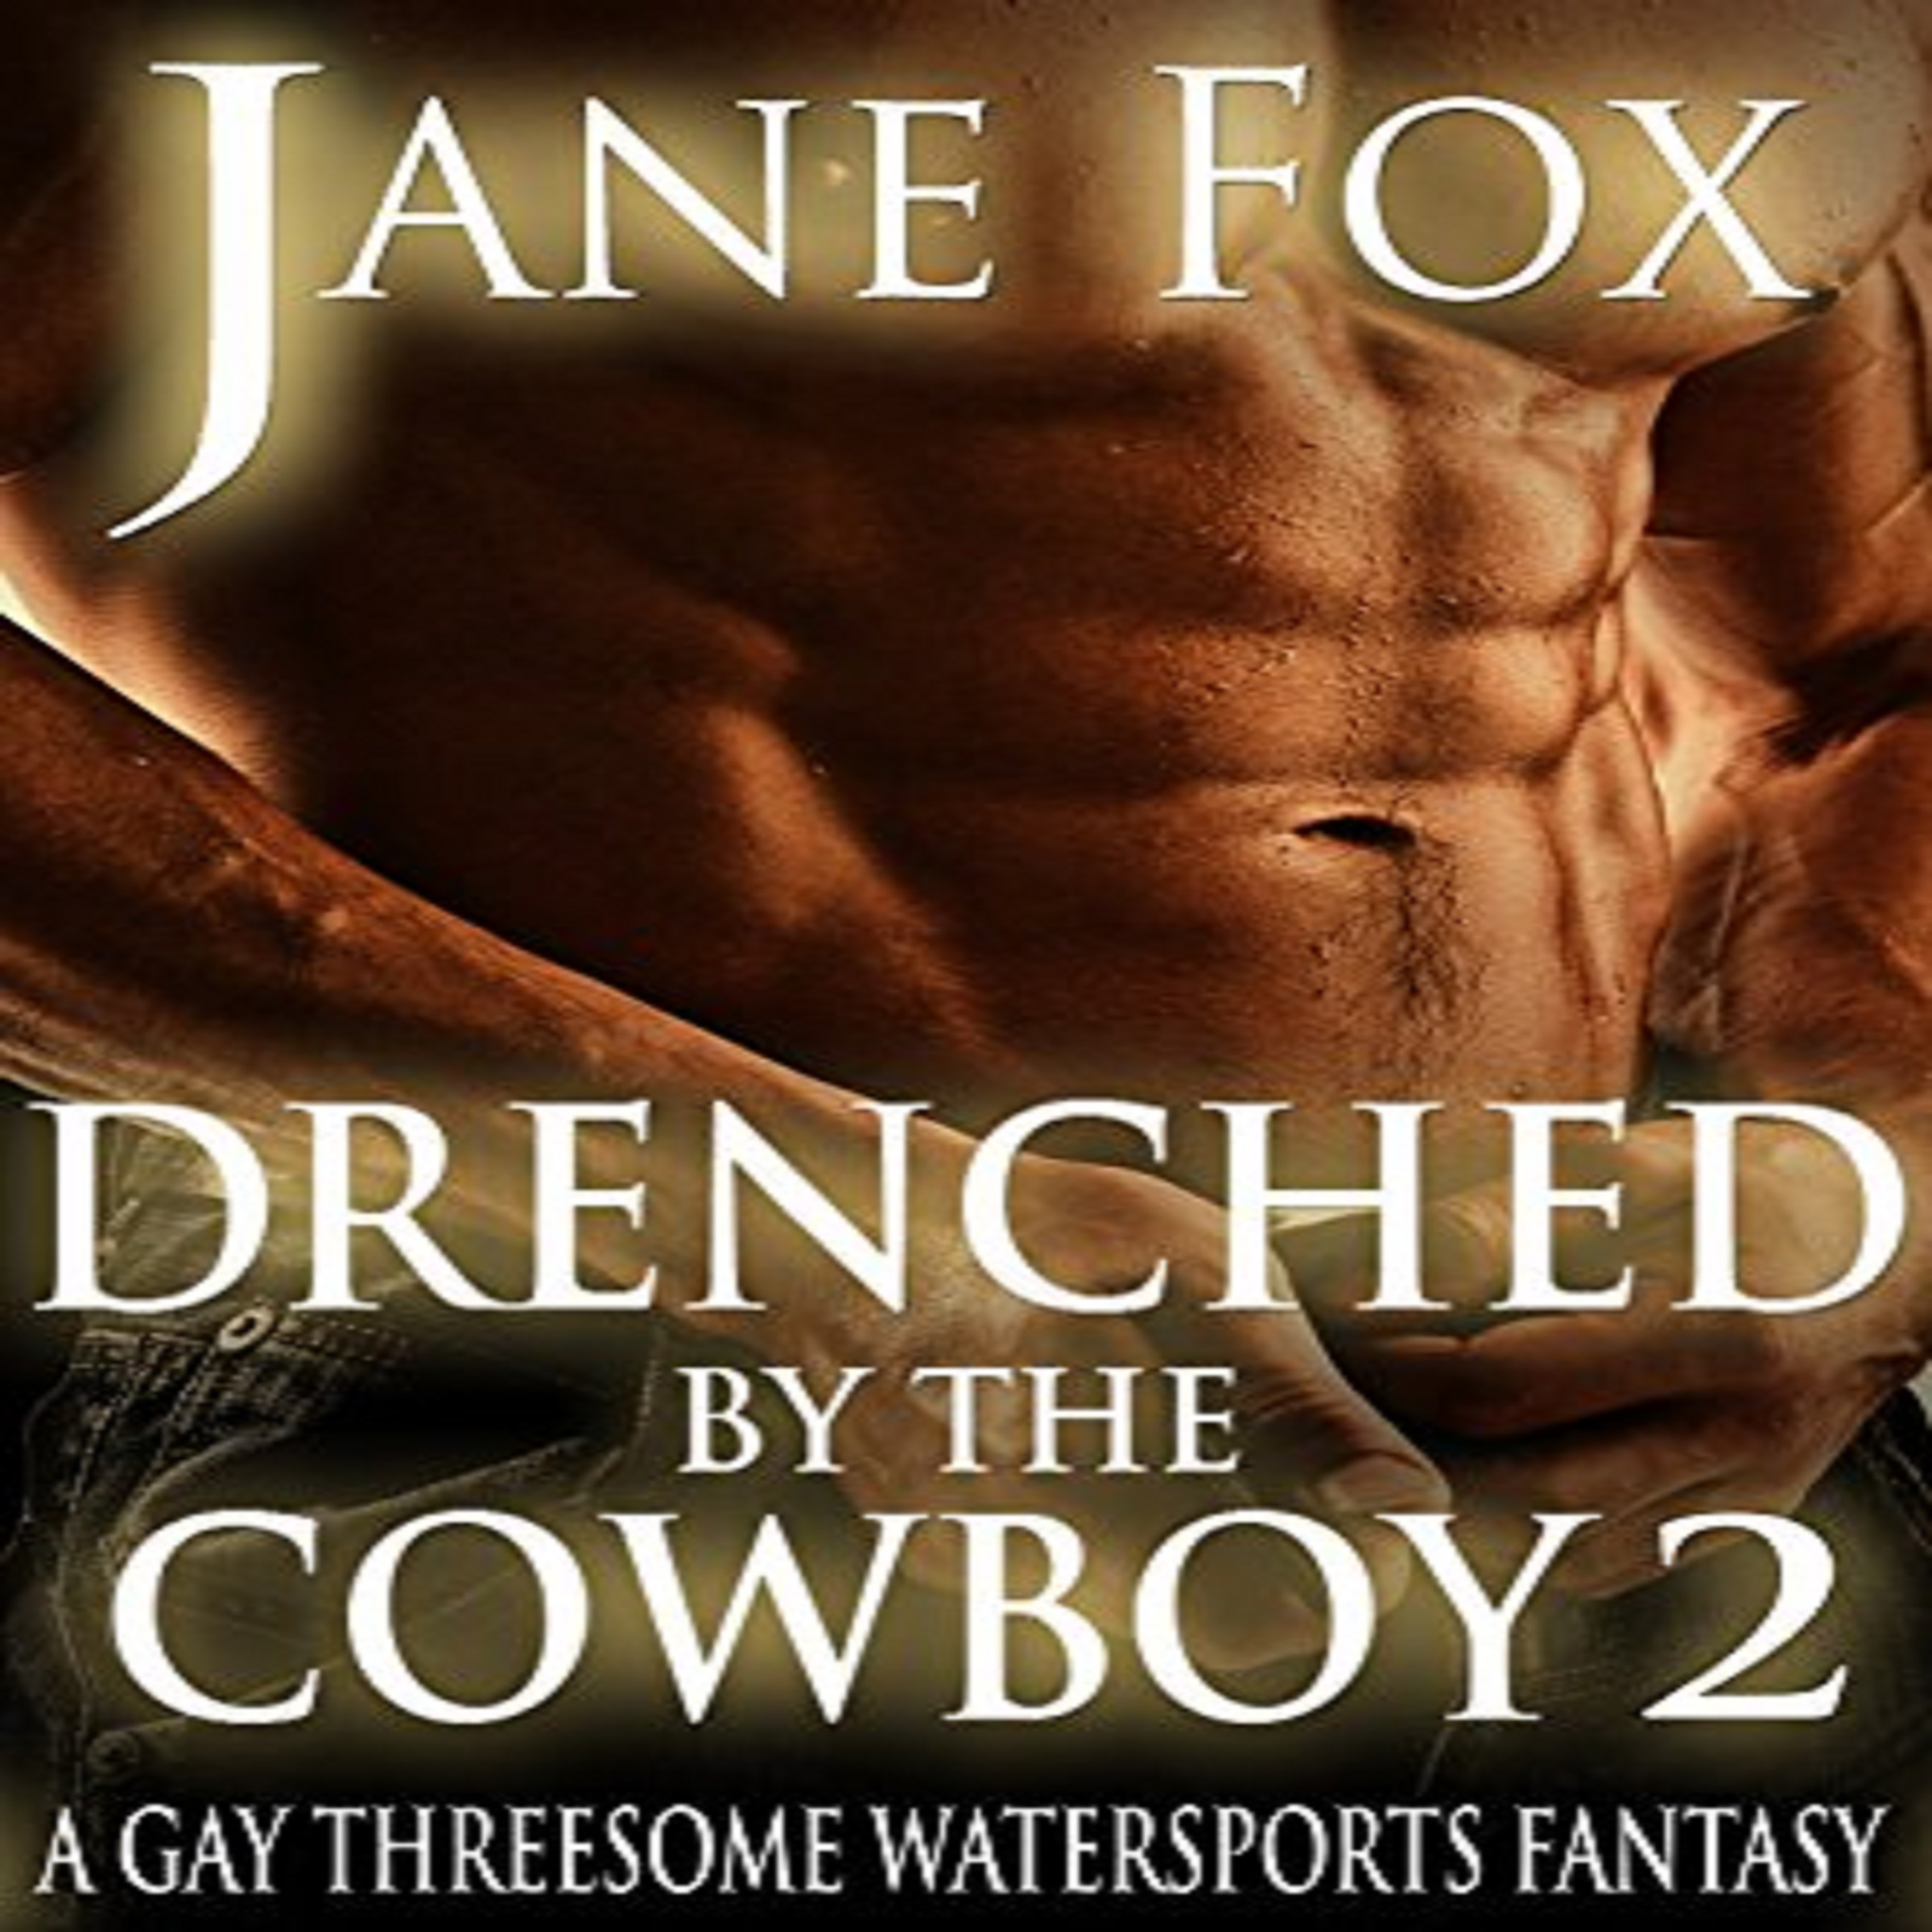 drenched by the cowboy 2